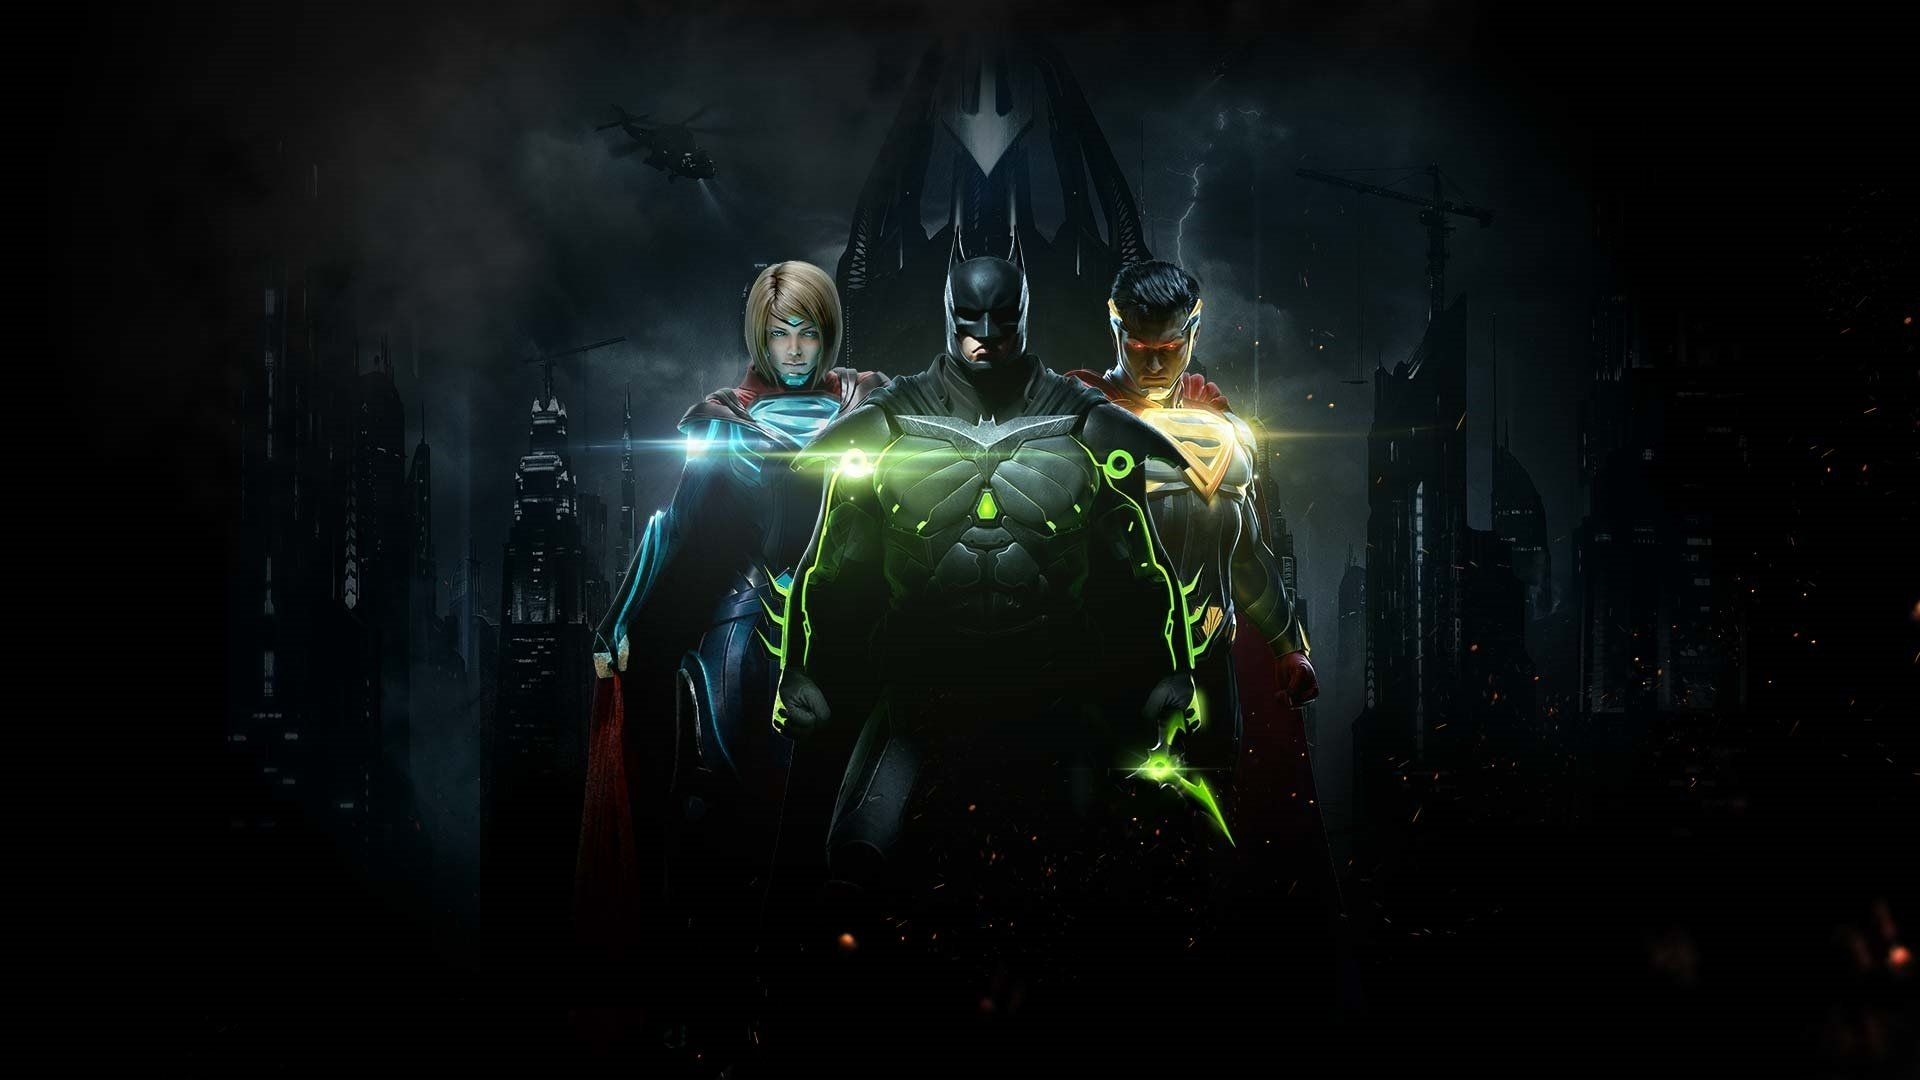 187 injustice hd wallpapers background images wallpaper abyss hd wallpaper background image id790802 voltagebd Choice Image